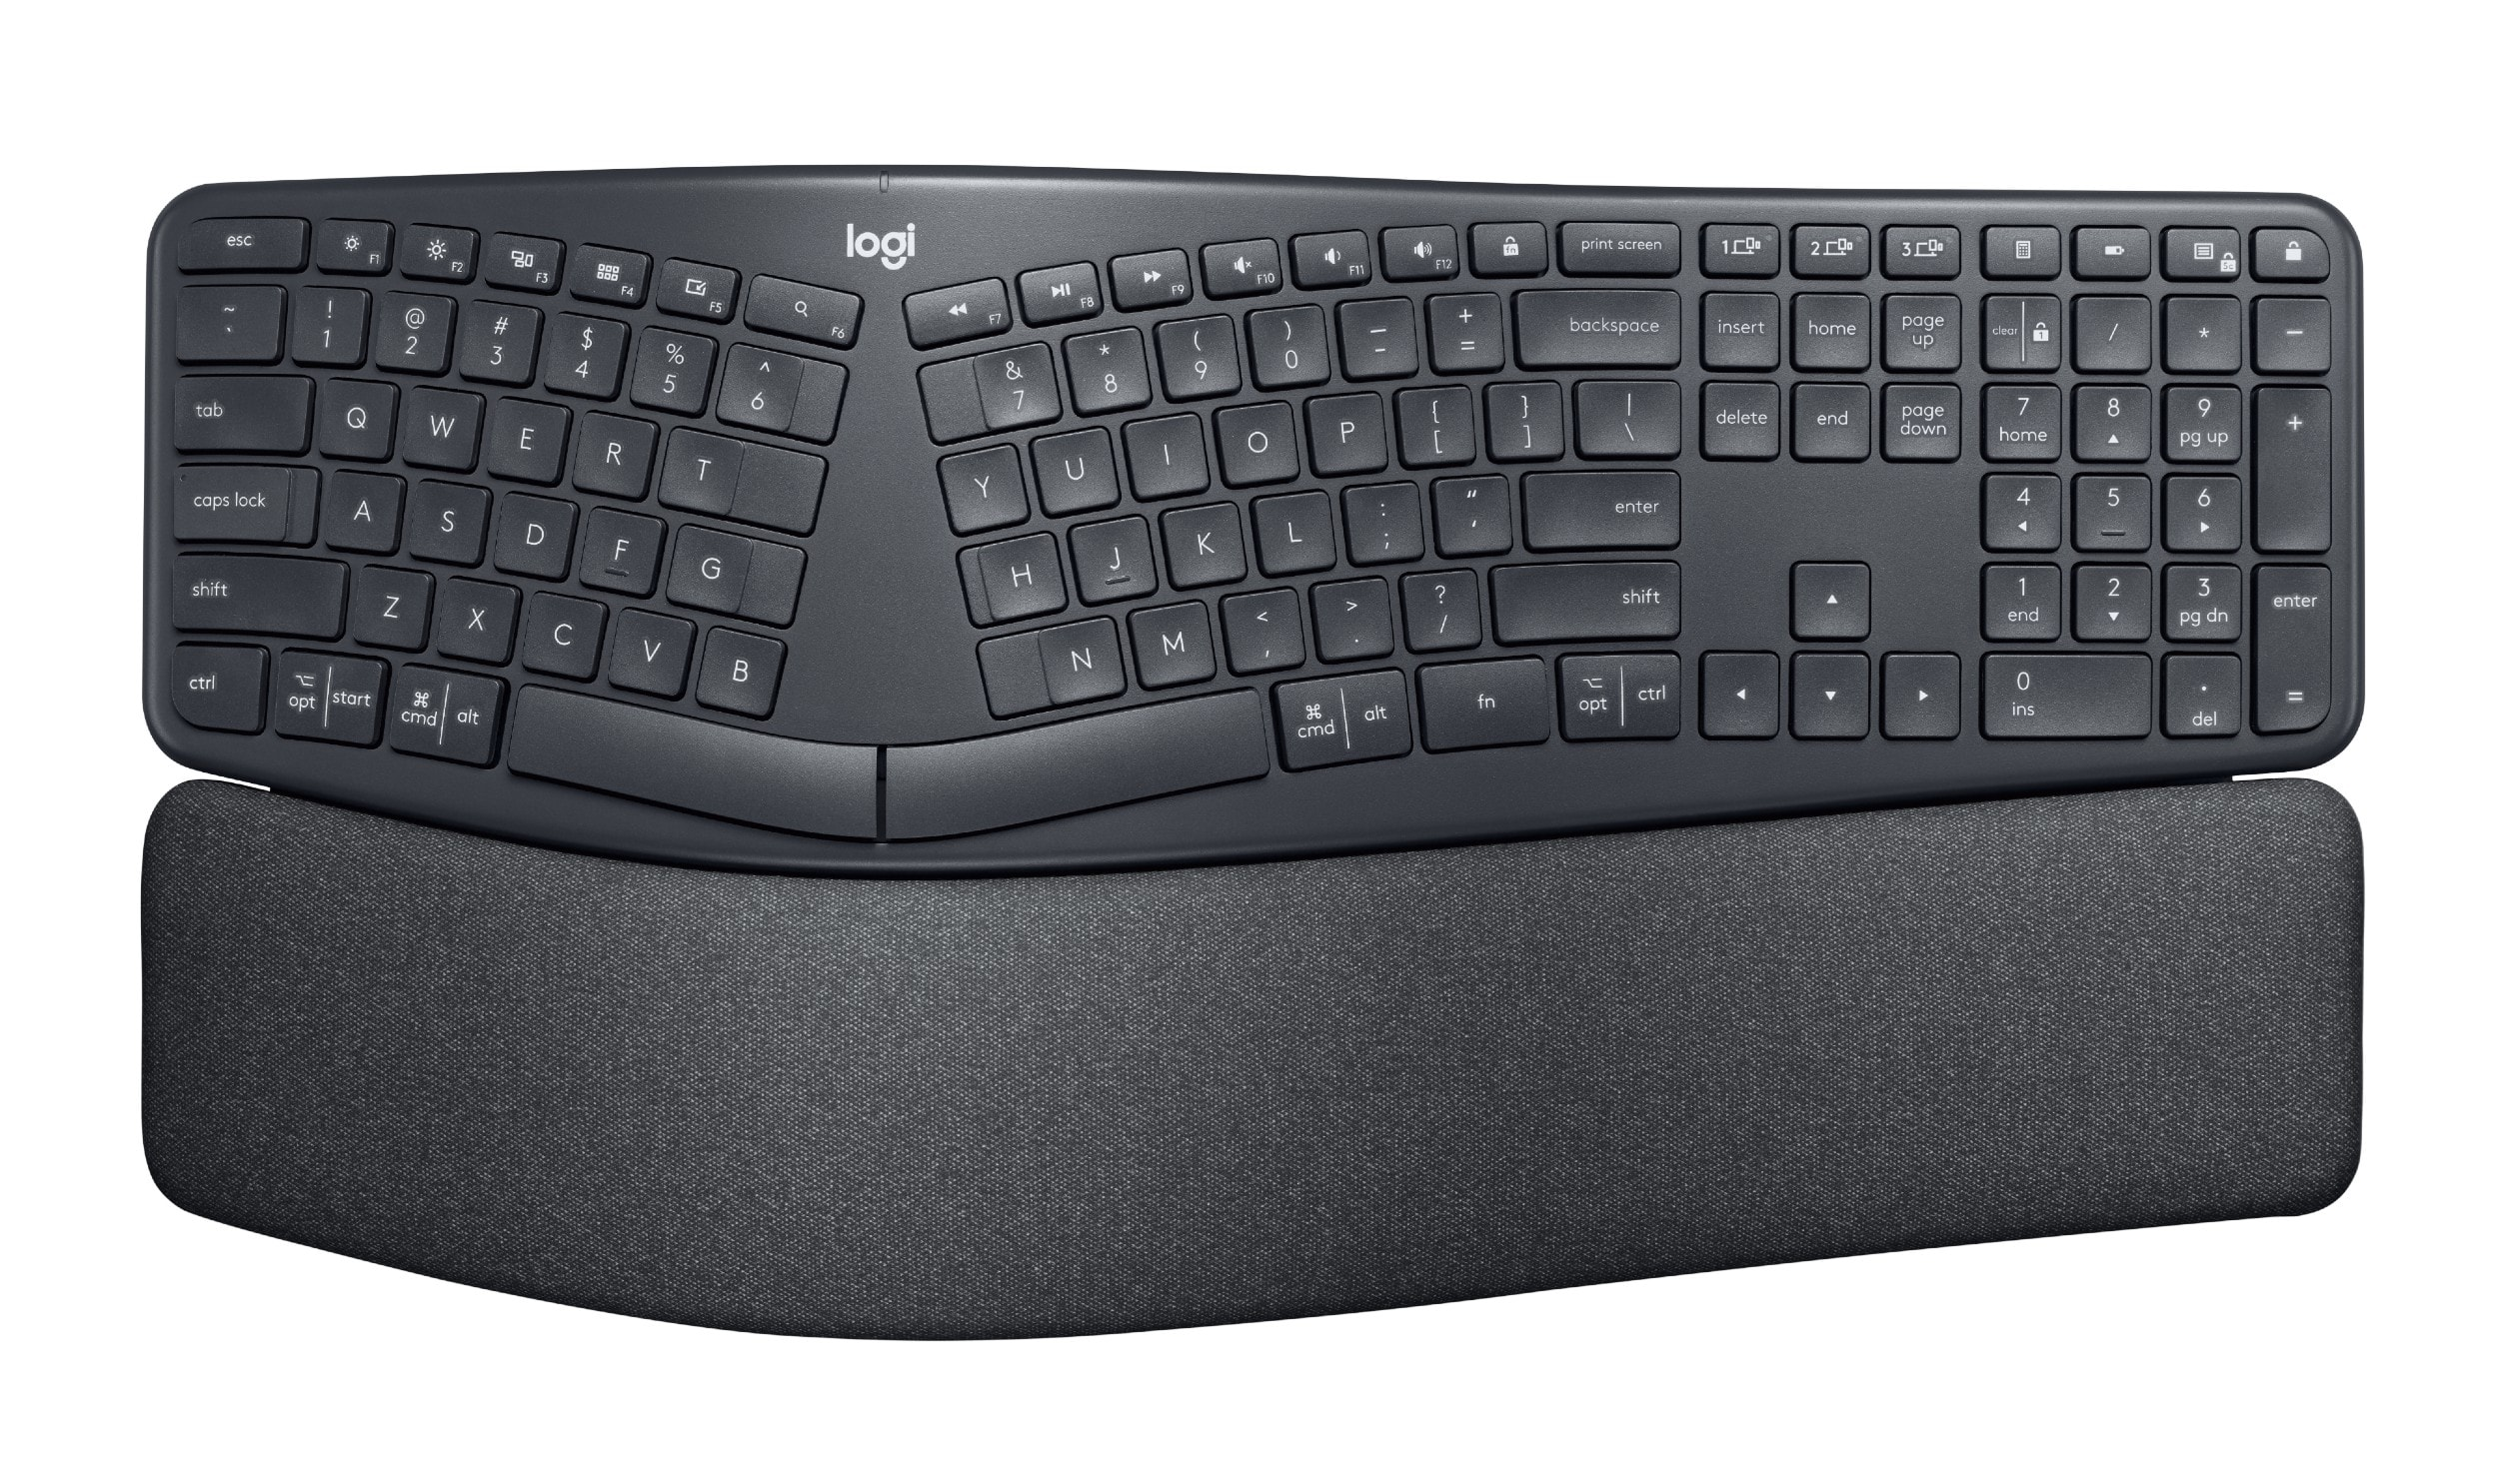 The Logitech Ergo K860 offers pretty much every key you need.